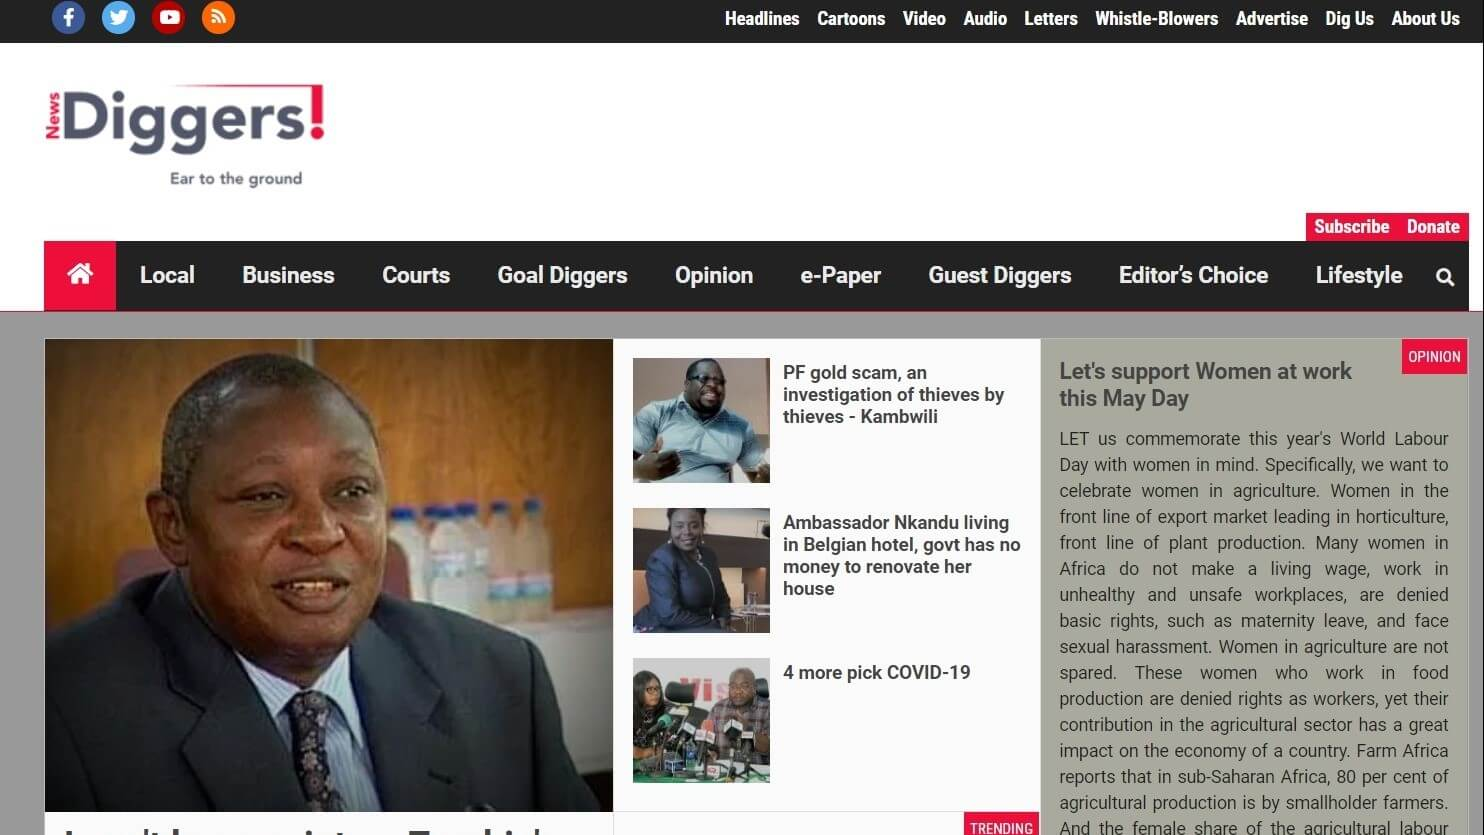 zambia newspapers 15 News Diggers website